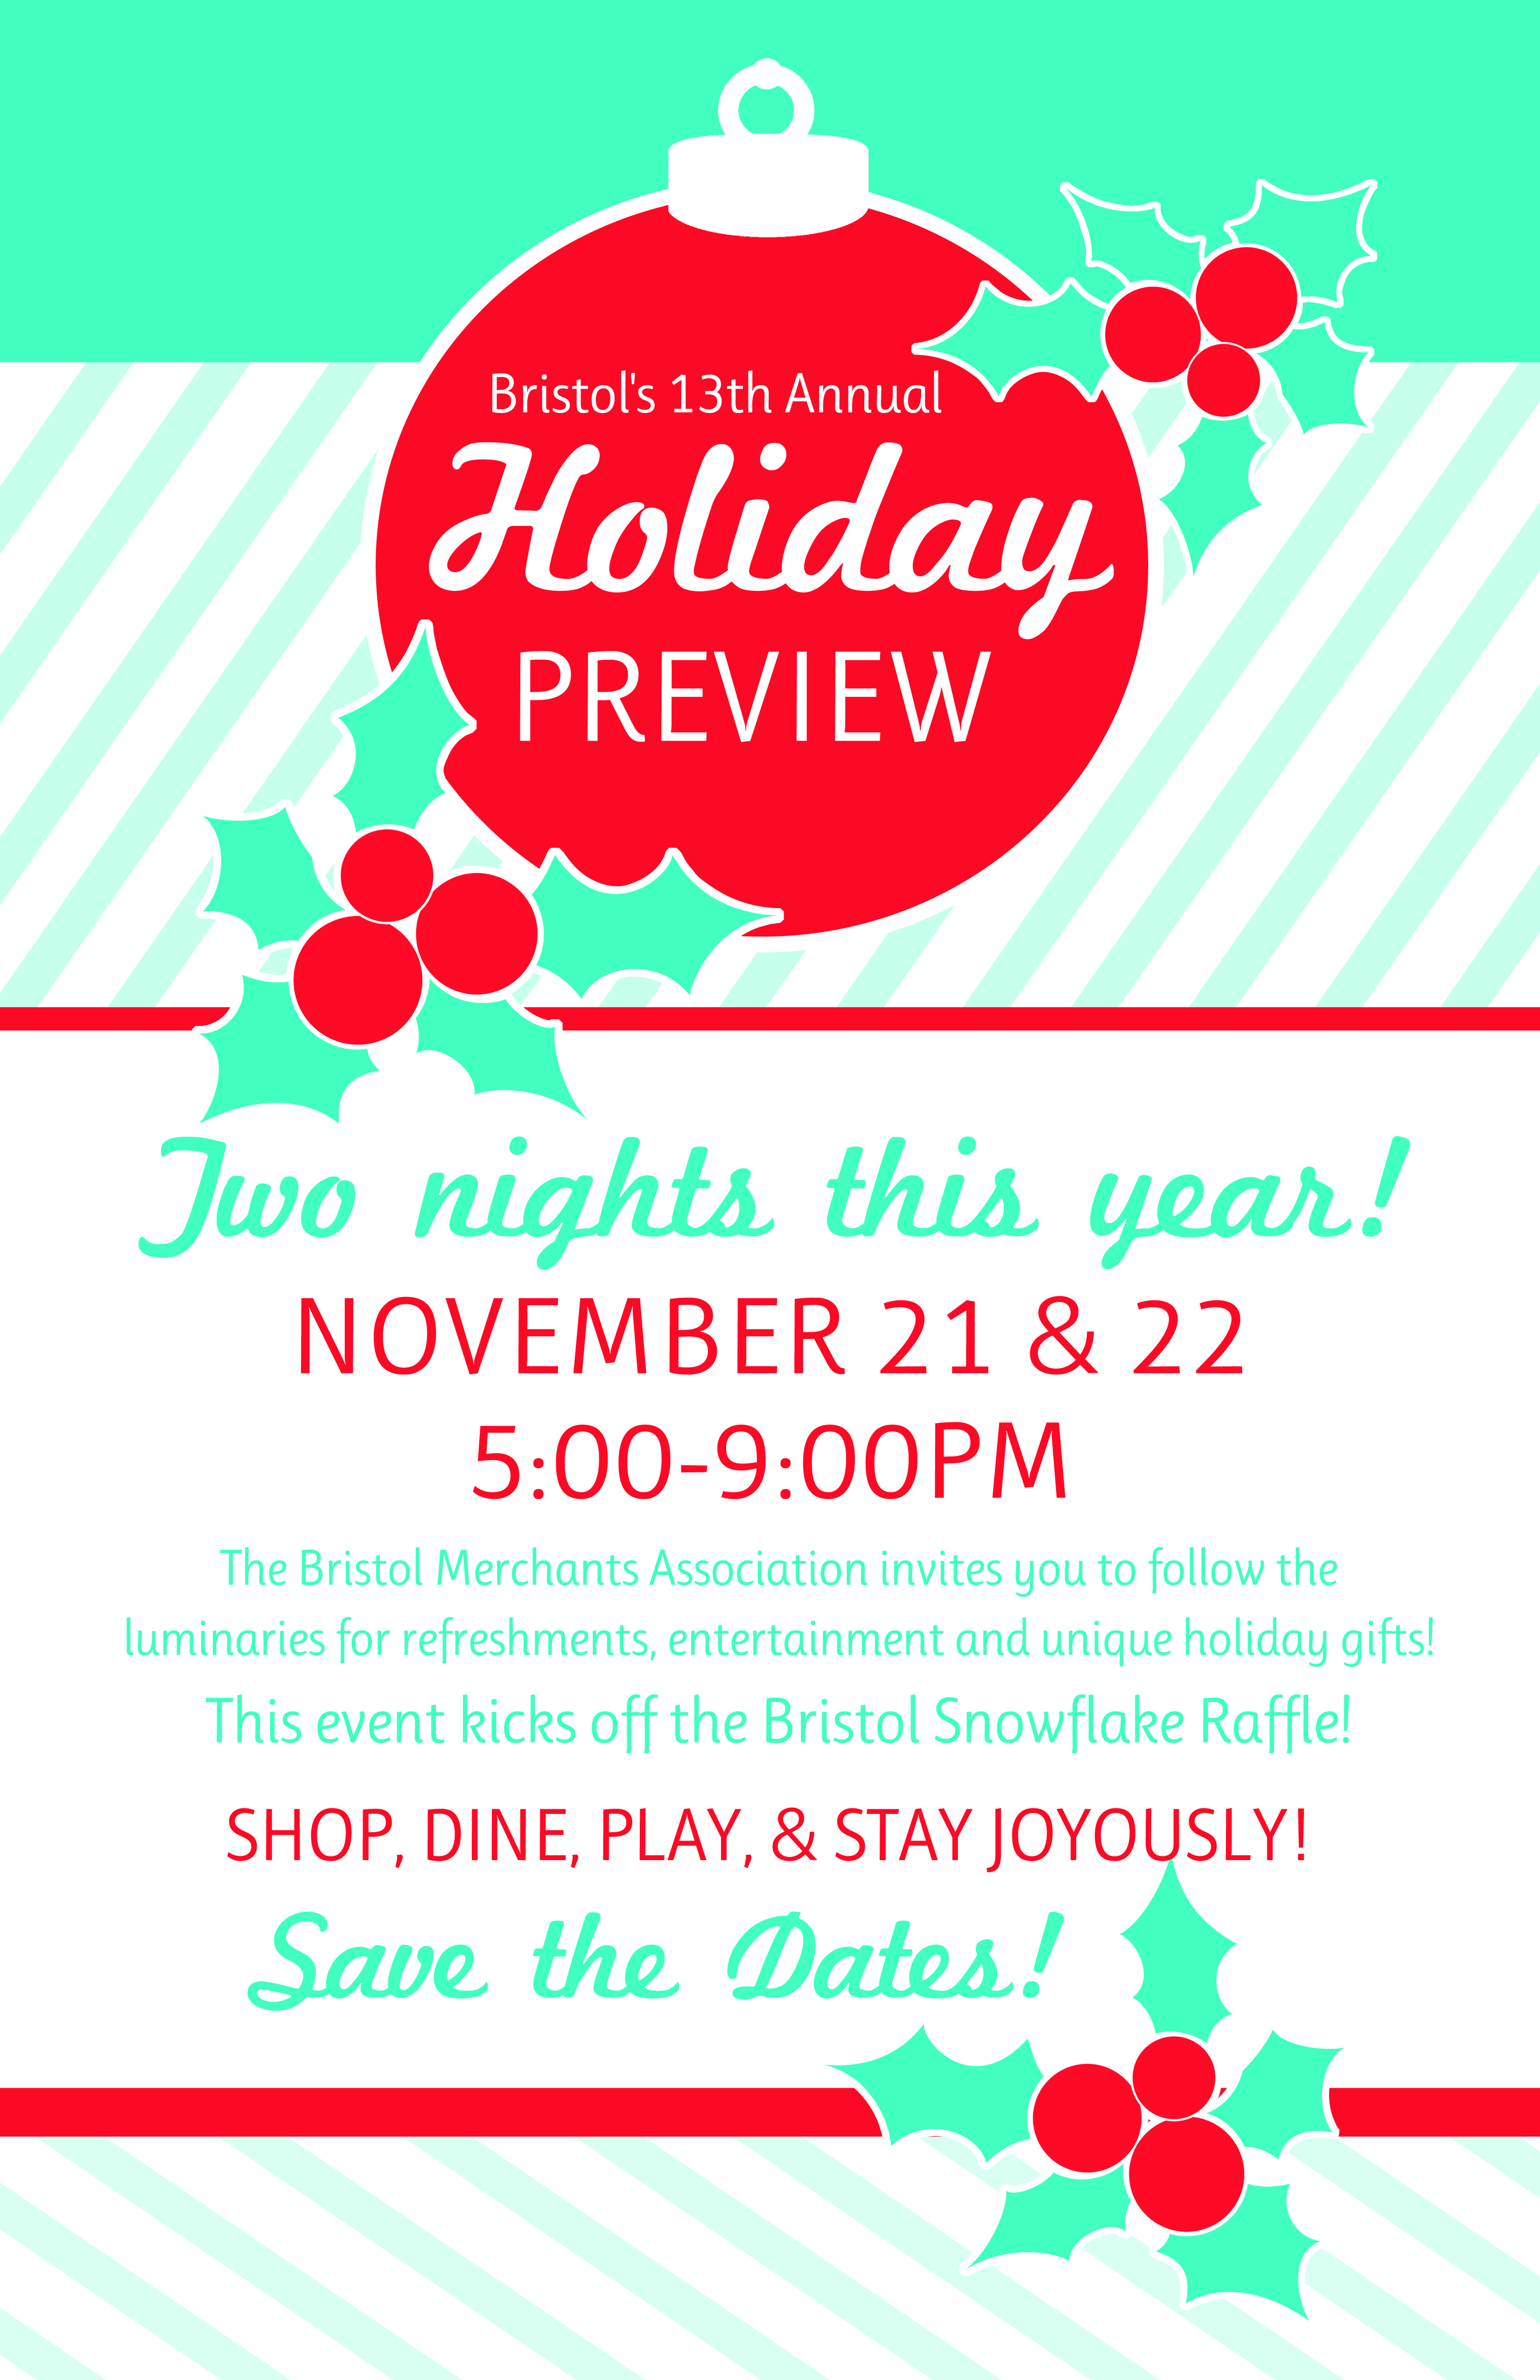 HolidayPreview2014